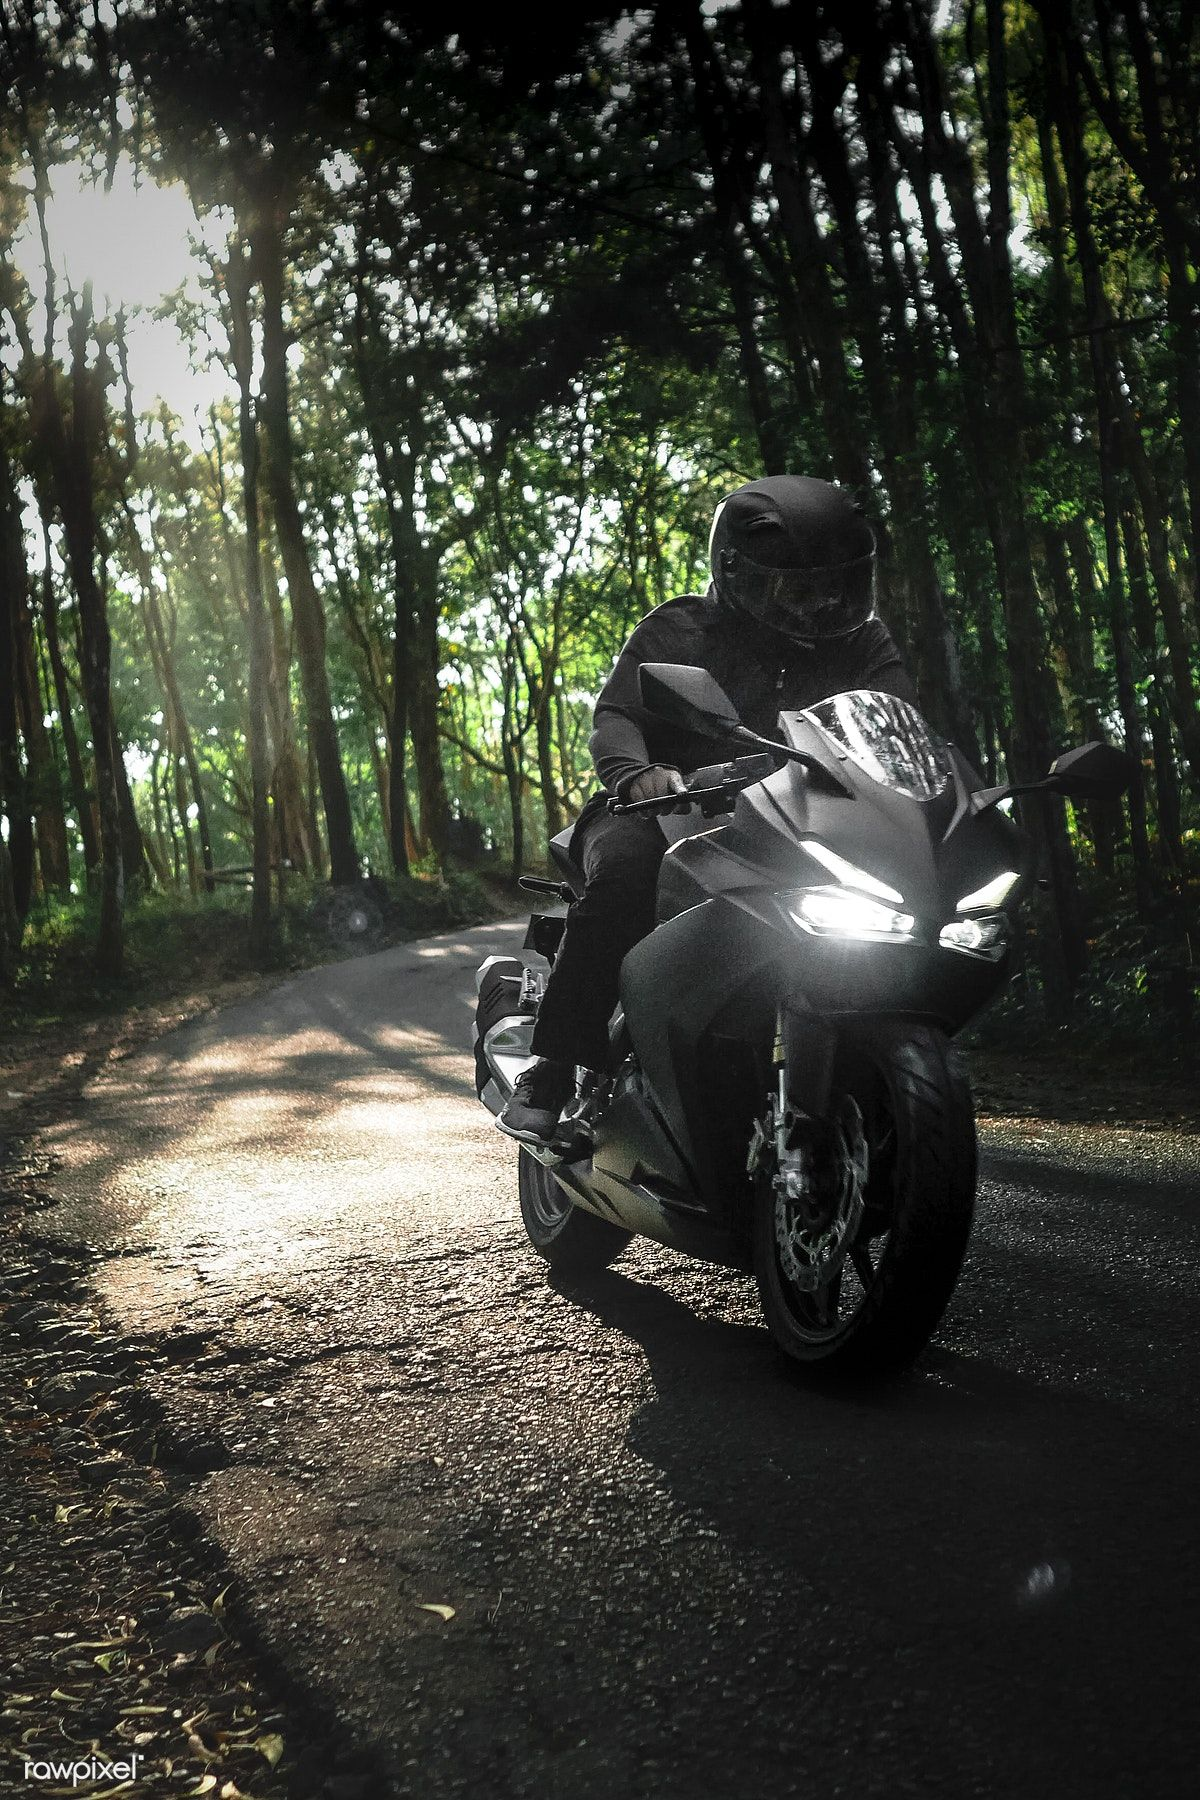 Man On A Motorbike In A Forest In Indonesia Free Image By